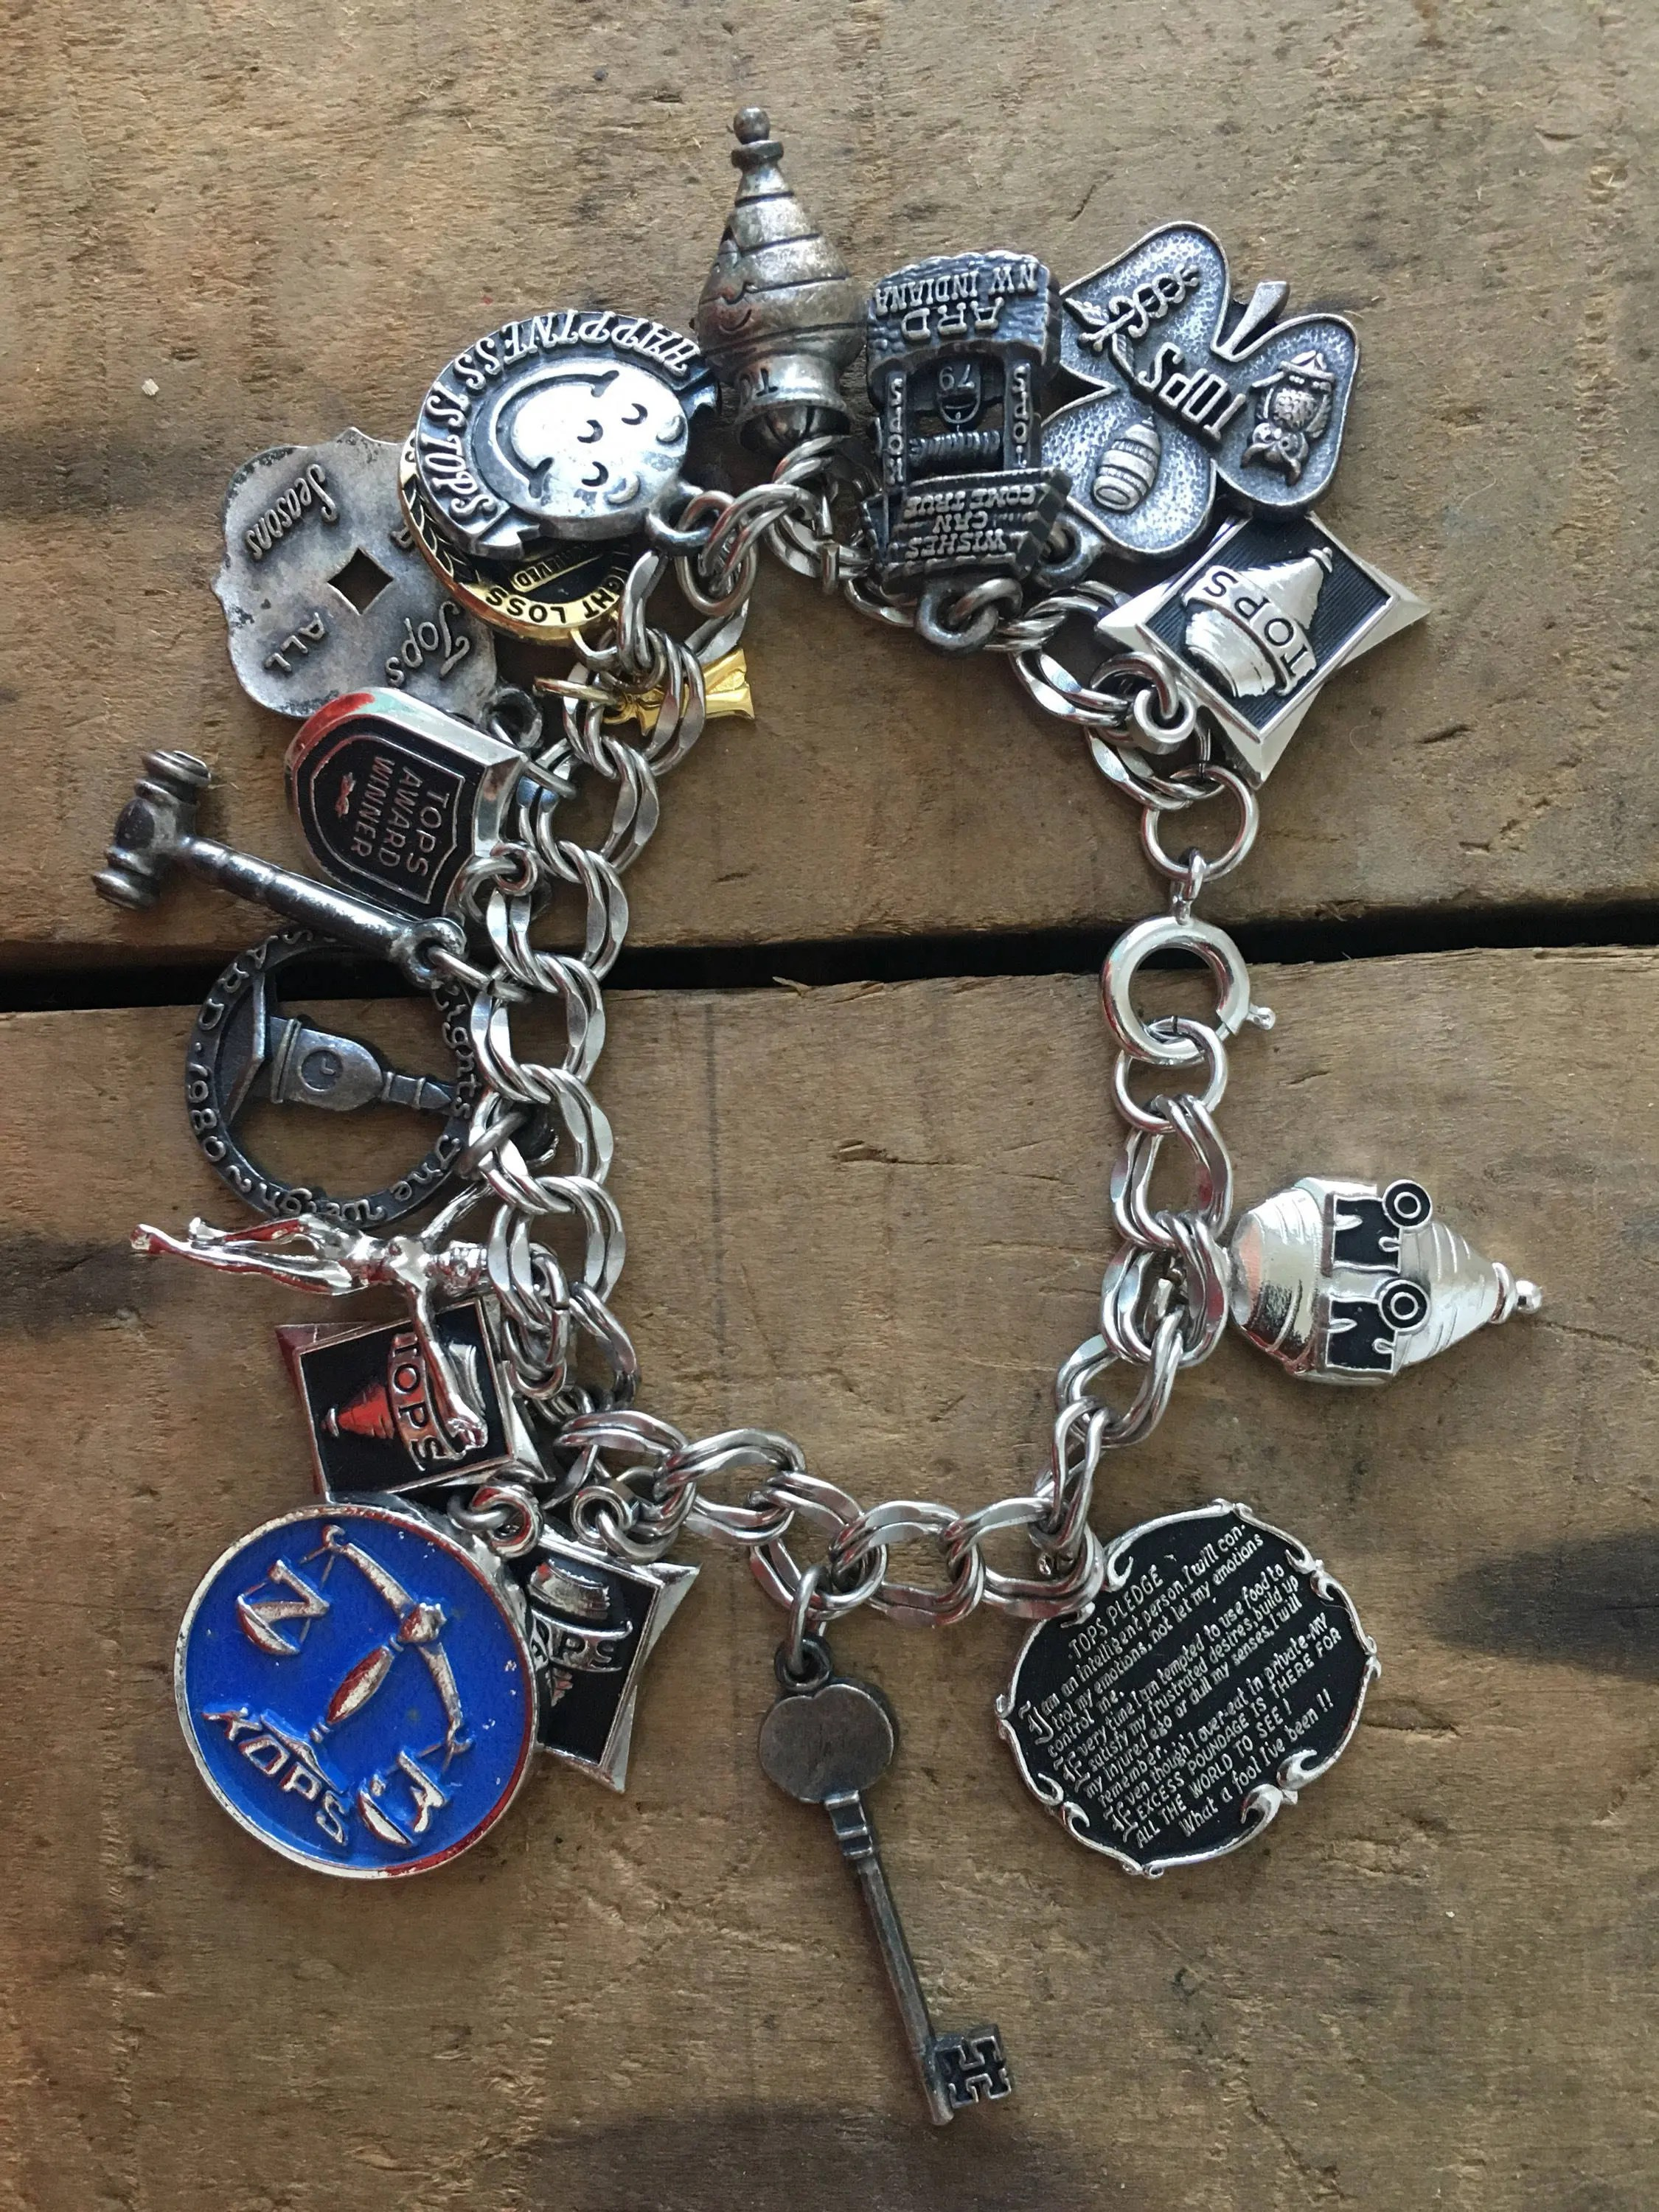 30+ Top Charms ideas | rembrandt charms, charmed, top styles